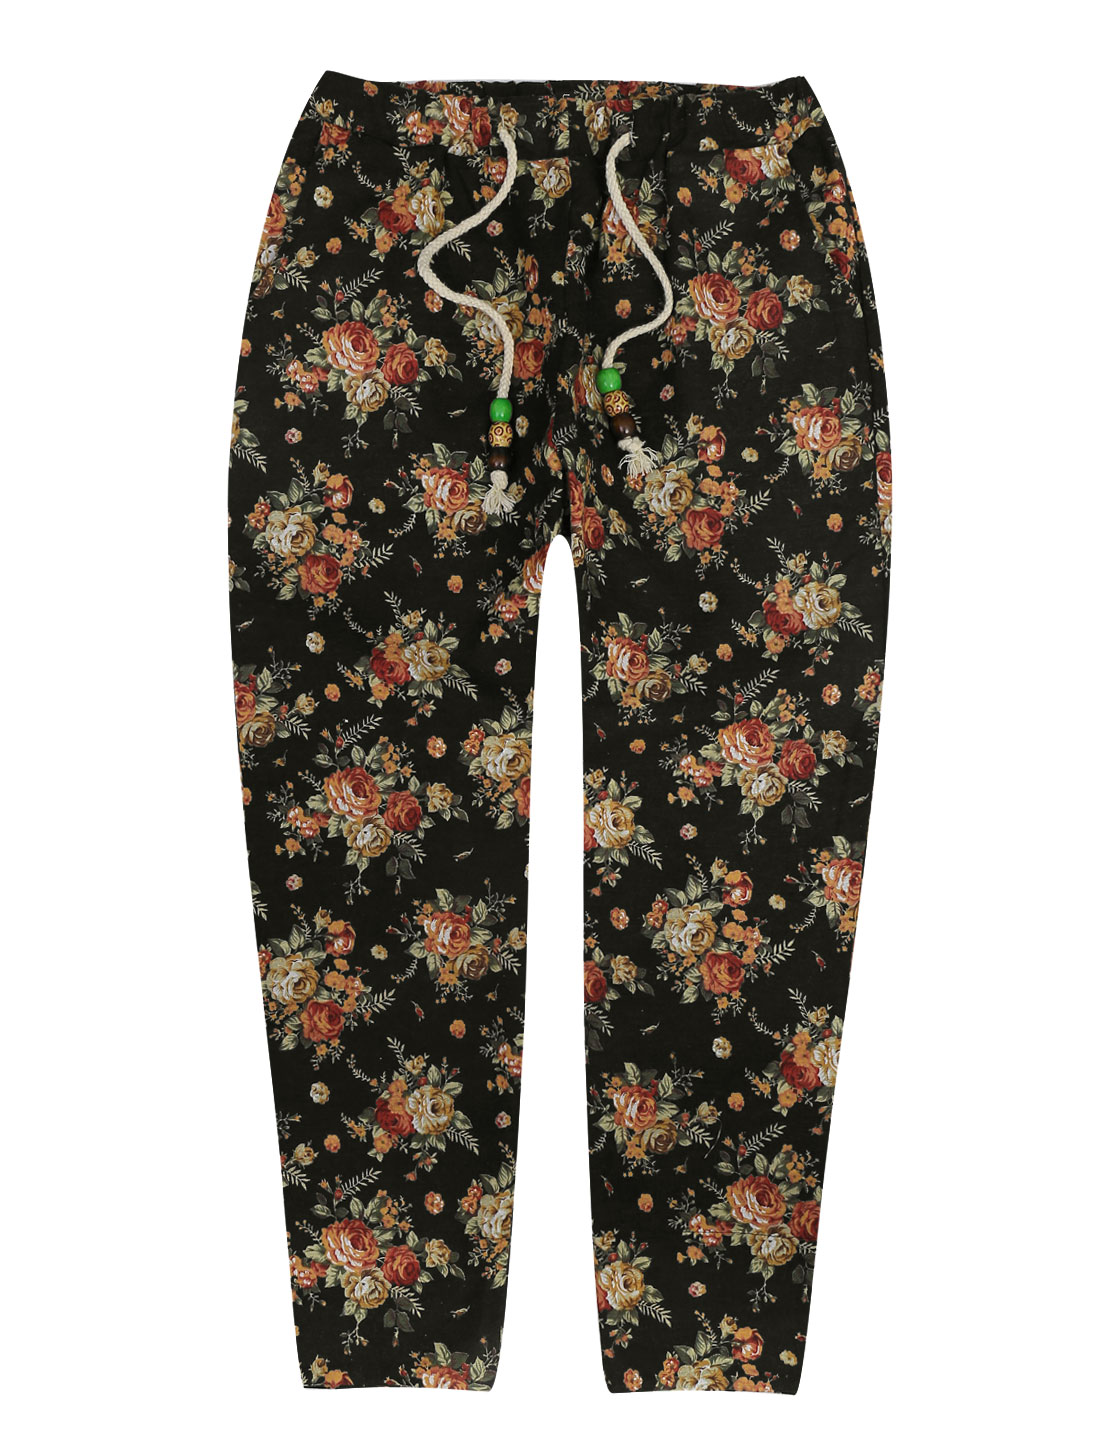 Men Elastic Waist Floral Prints Pockets Style Cropped Pants Multicolor W30